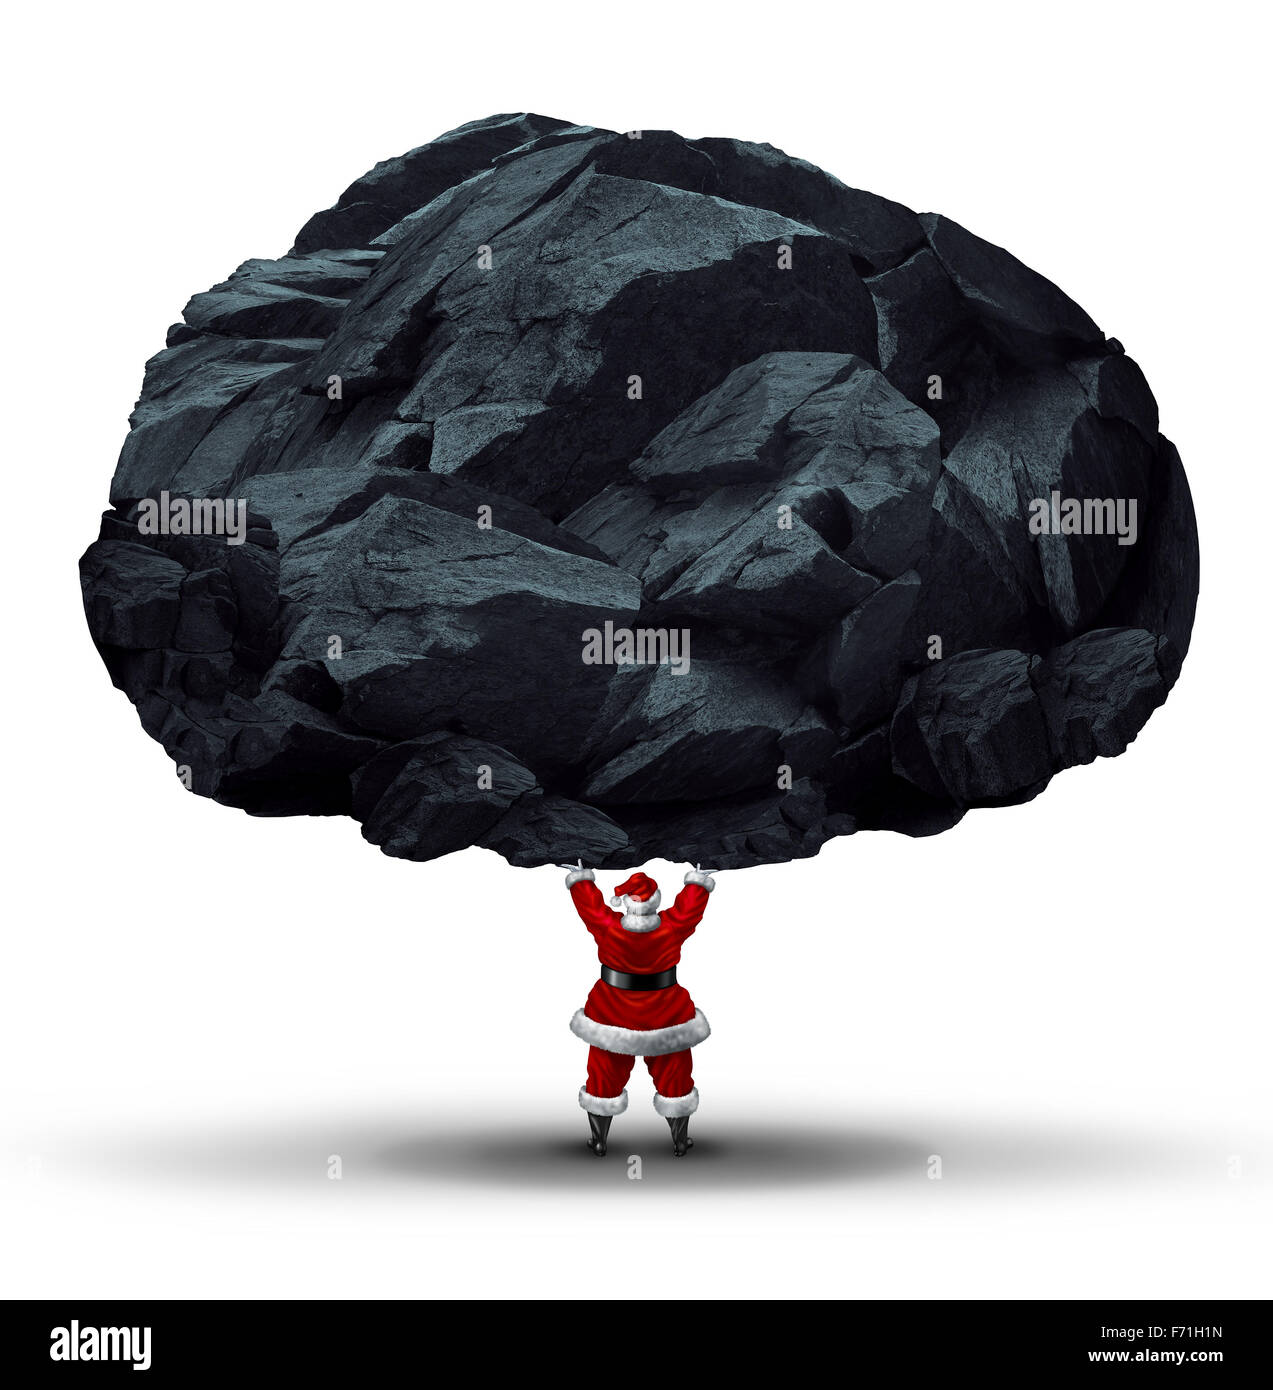 Lump of coal symbol as a punishment gift or present for the naughty given by santa clause as a huge chunk of mineral - Stock Image